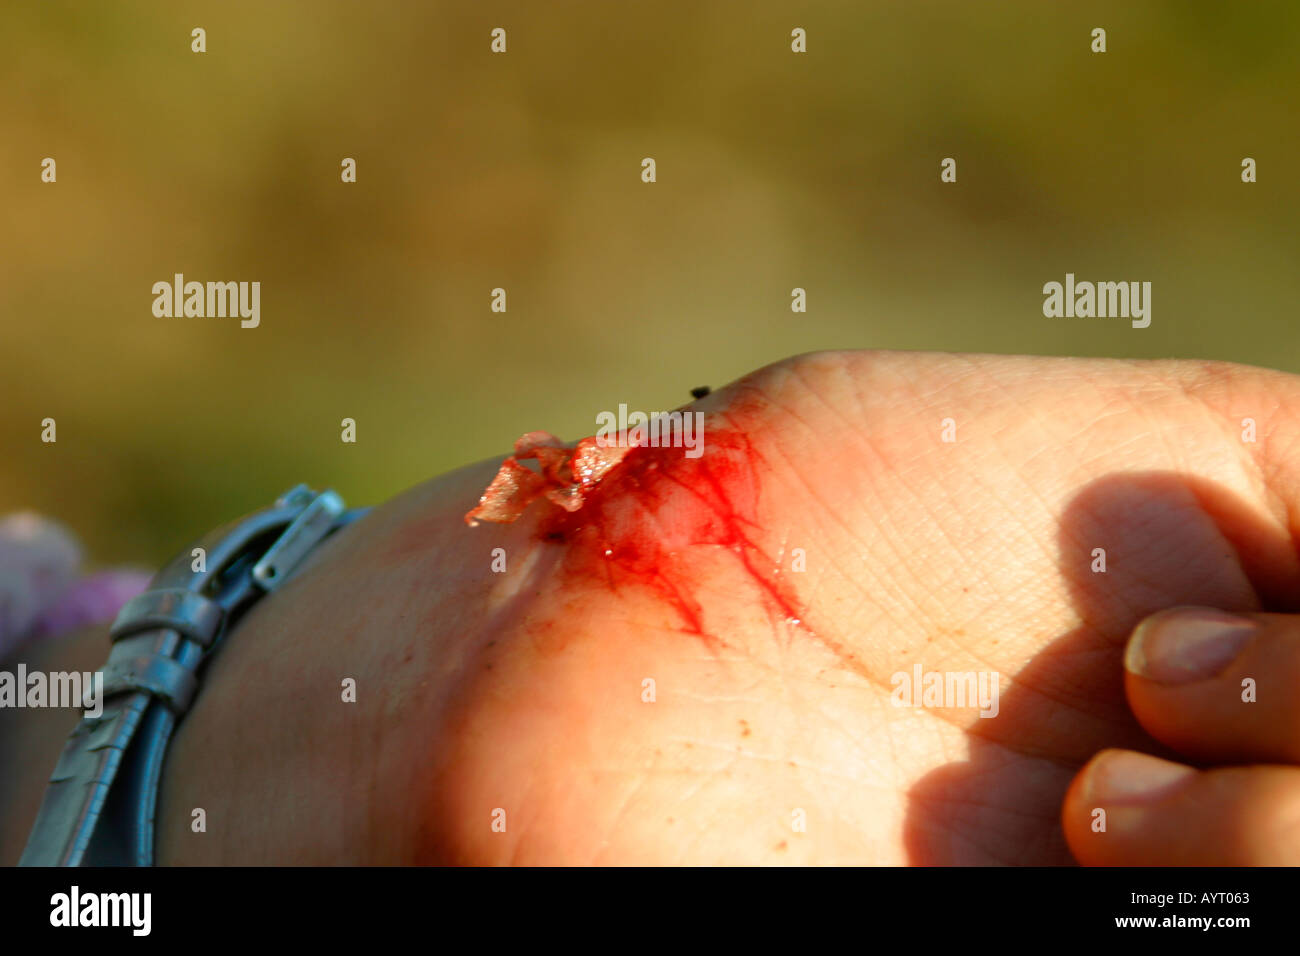 Young girls hand with cut blood and flap of skin Stock Photo ...